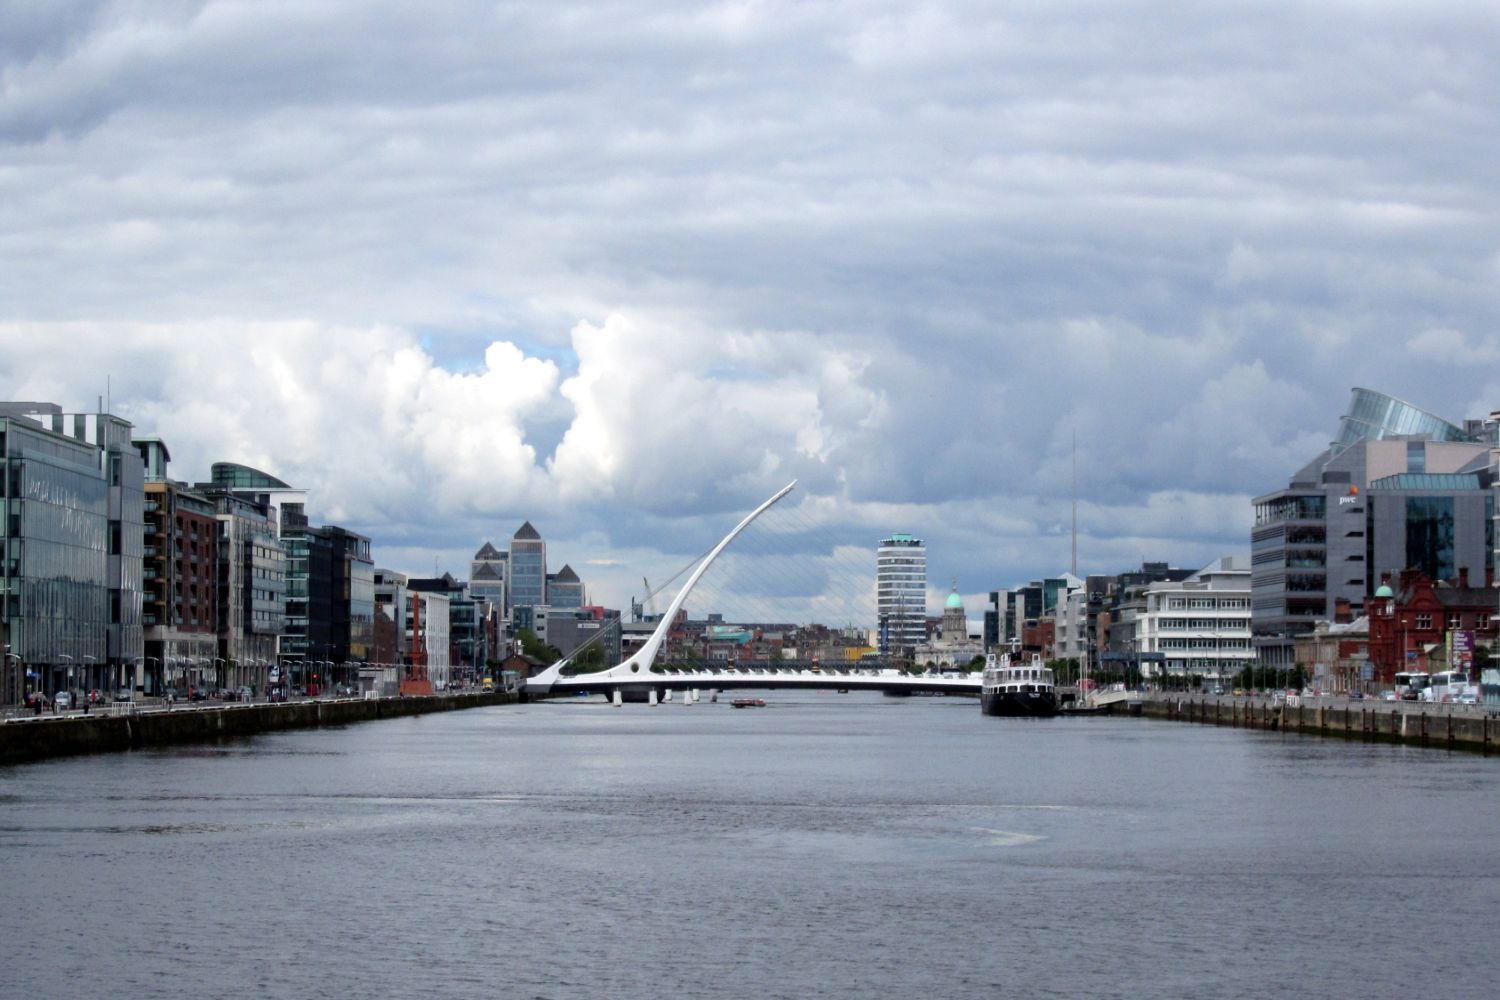 River Liffey view (2)